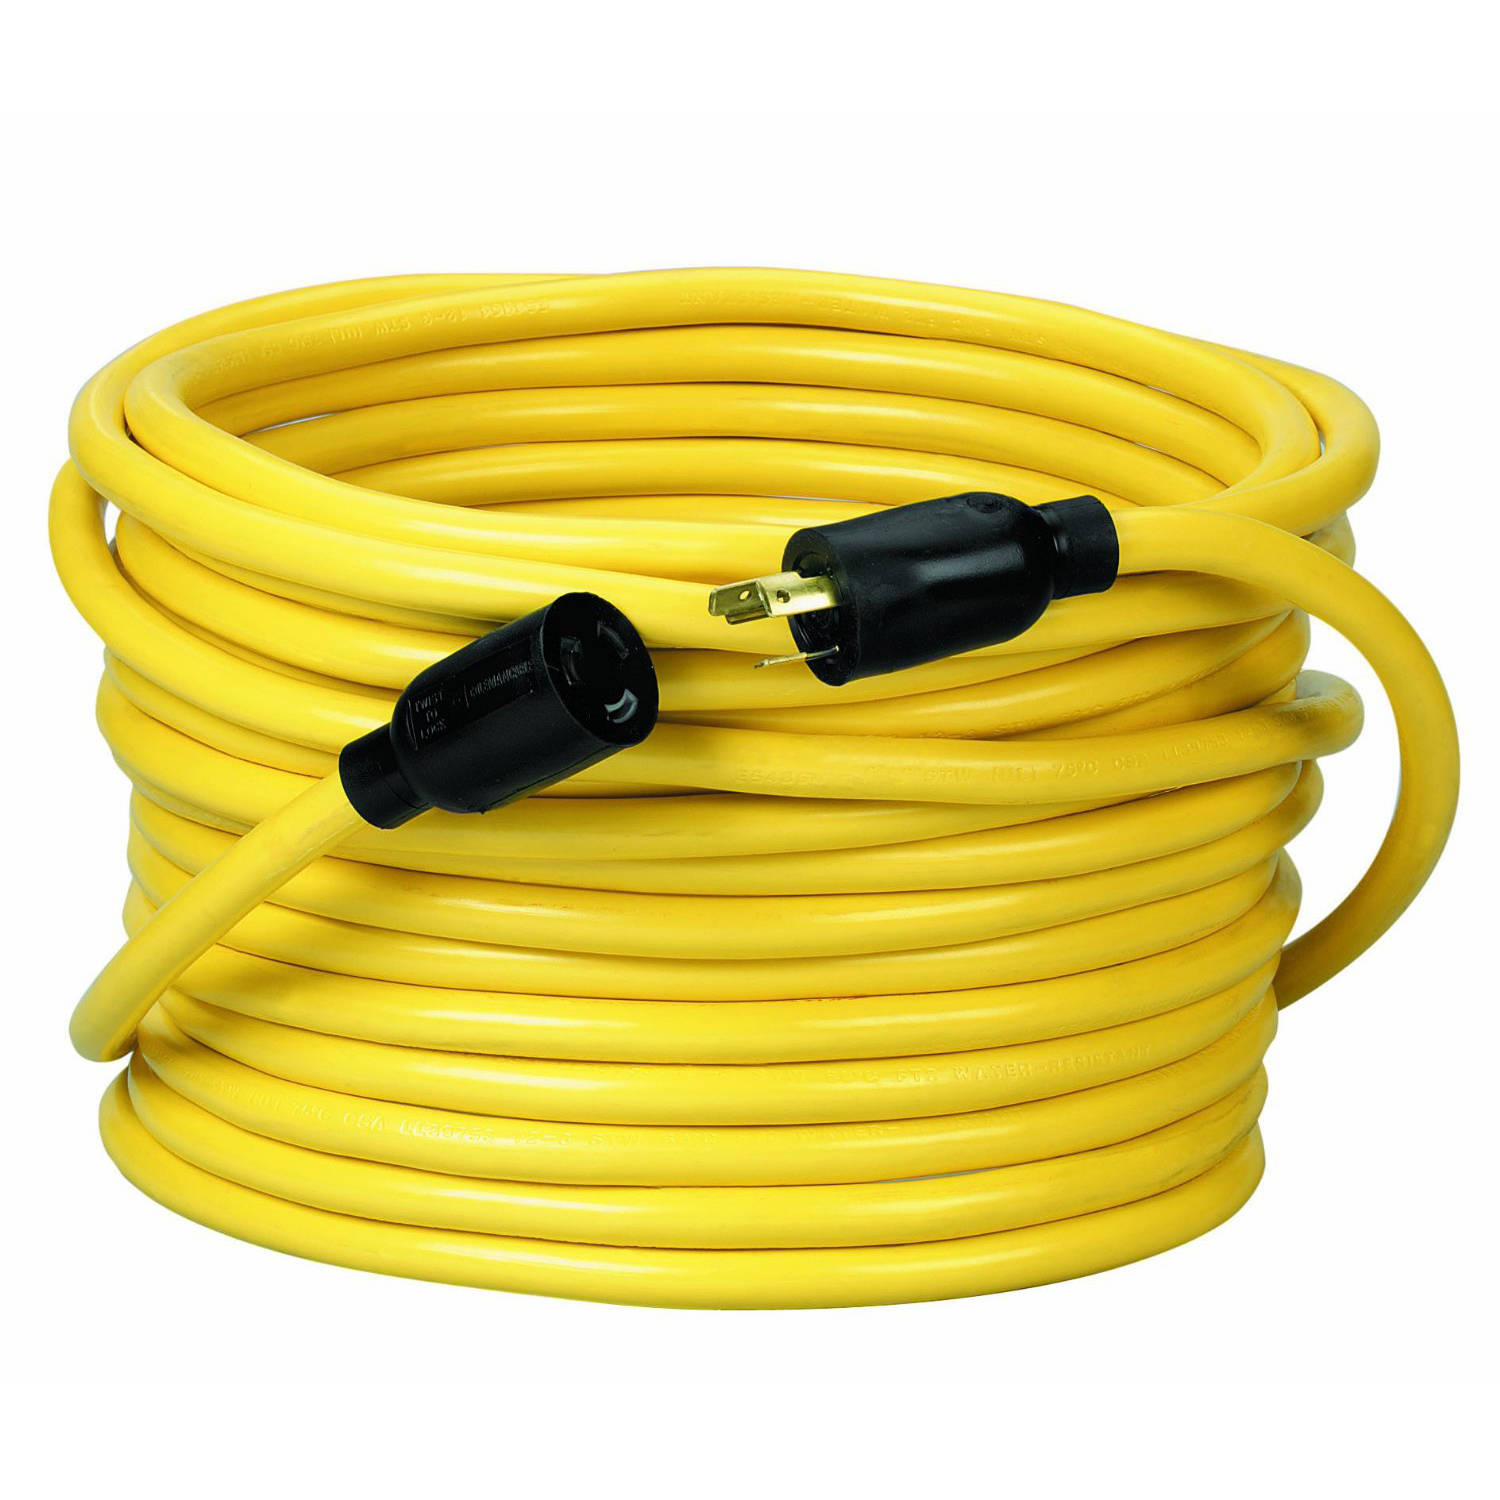 Coleman Cable 09208 12/3 SJTW Twist To Lock Extension Cord, 20-Amp, 50-Foot, Yellow